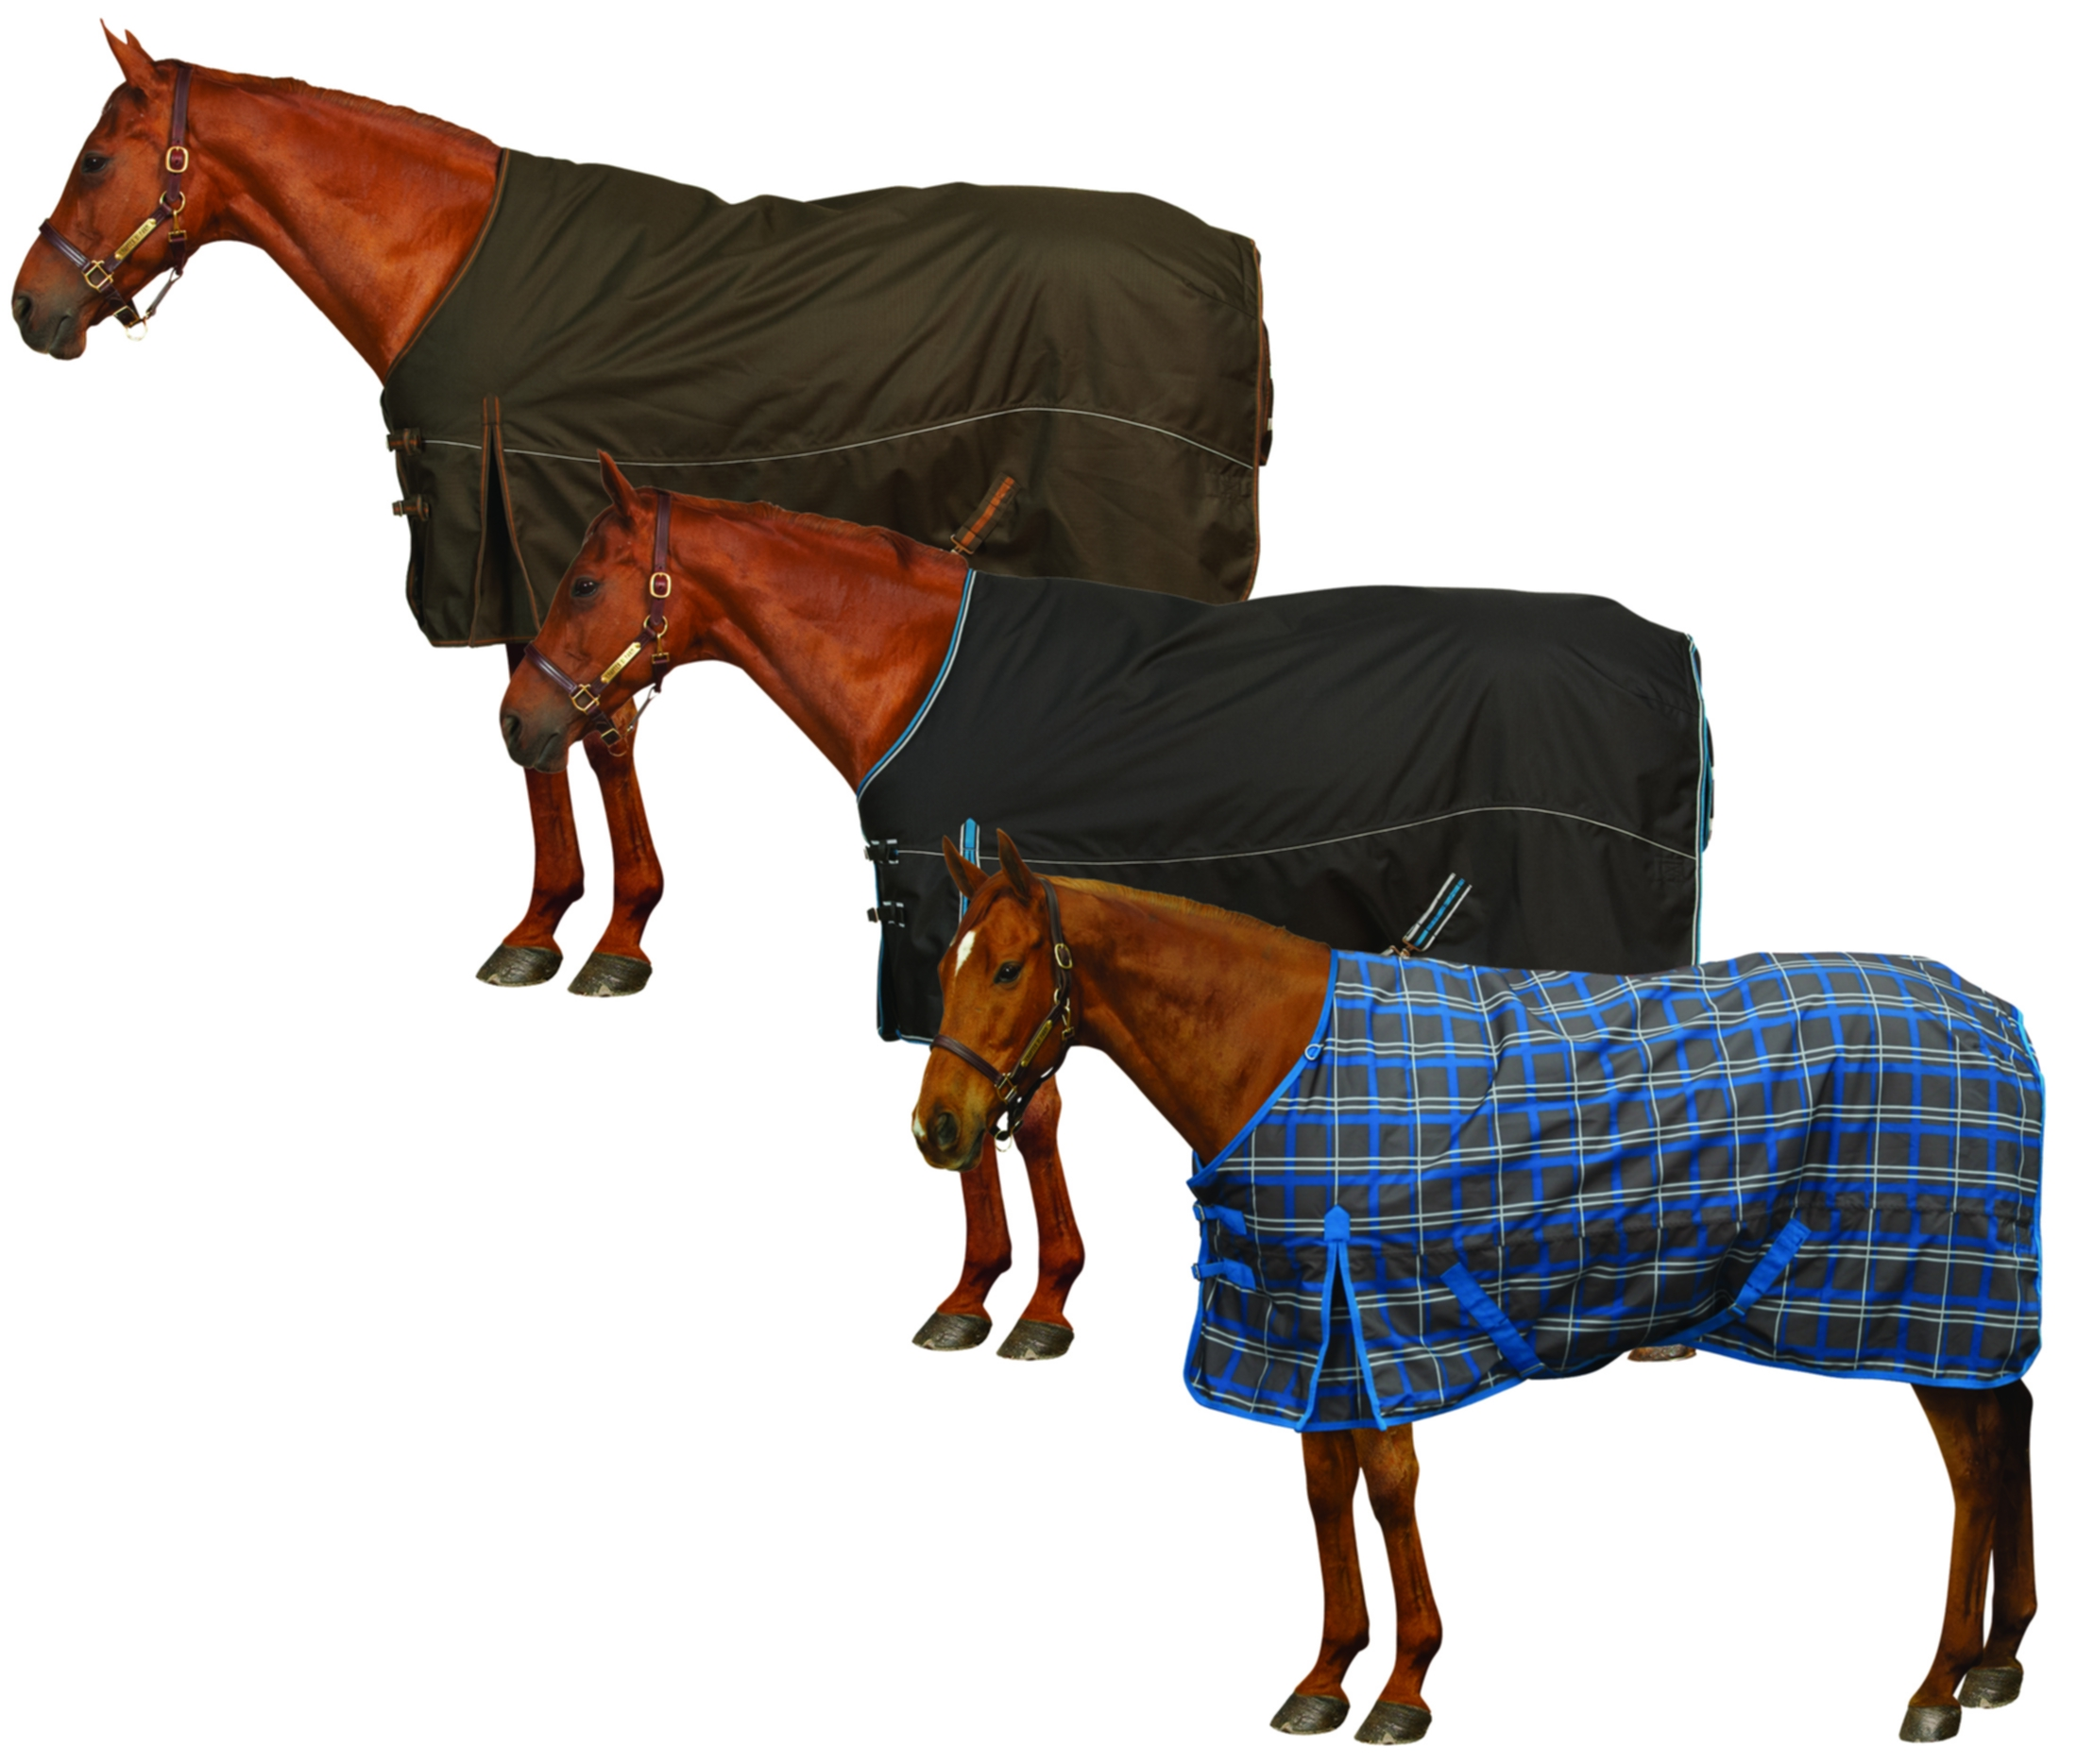 Centaur 1200D Waterproof / Breathable Mediumweight Blanket